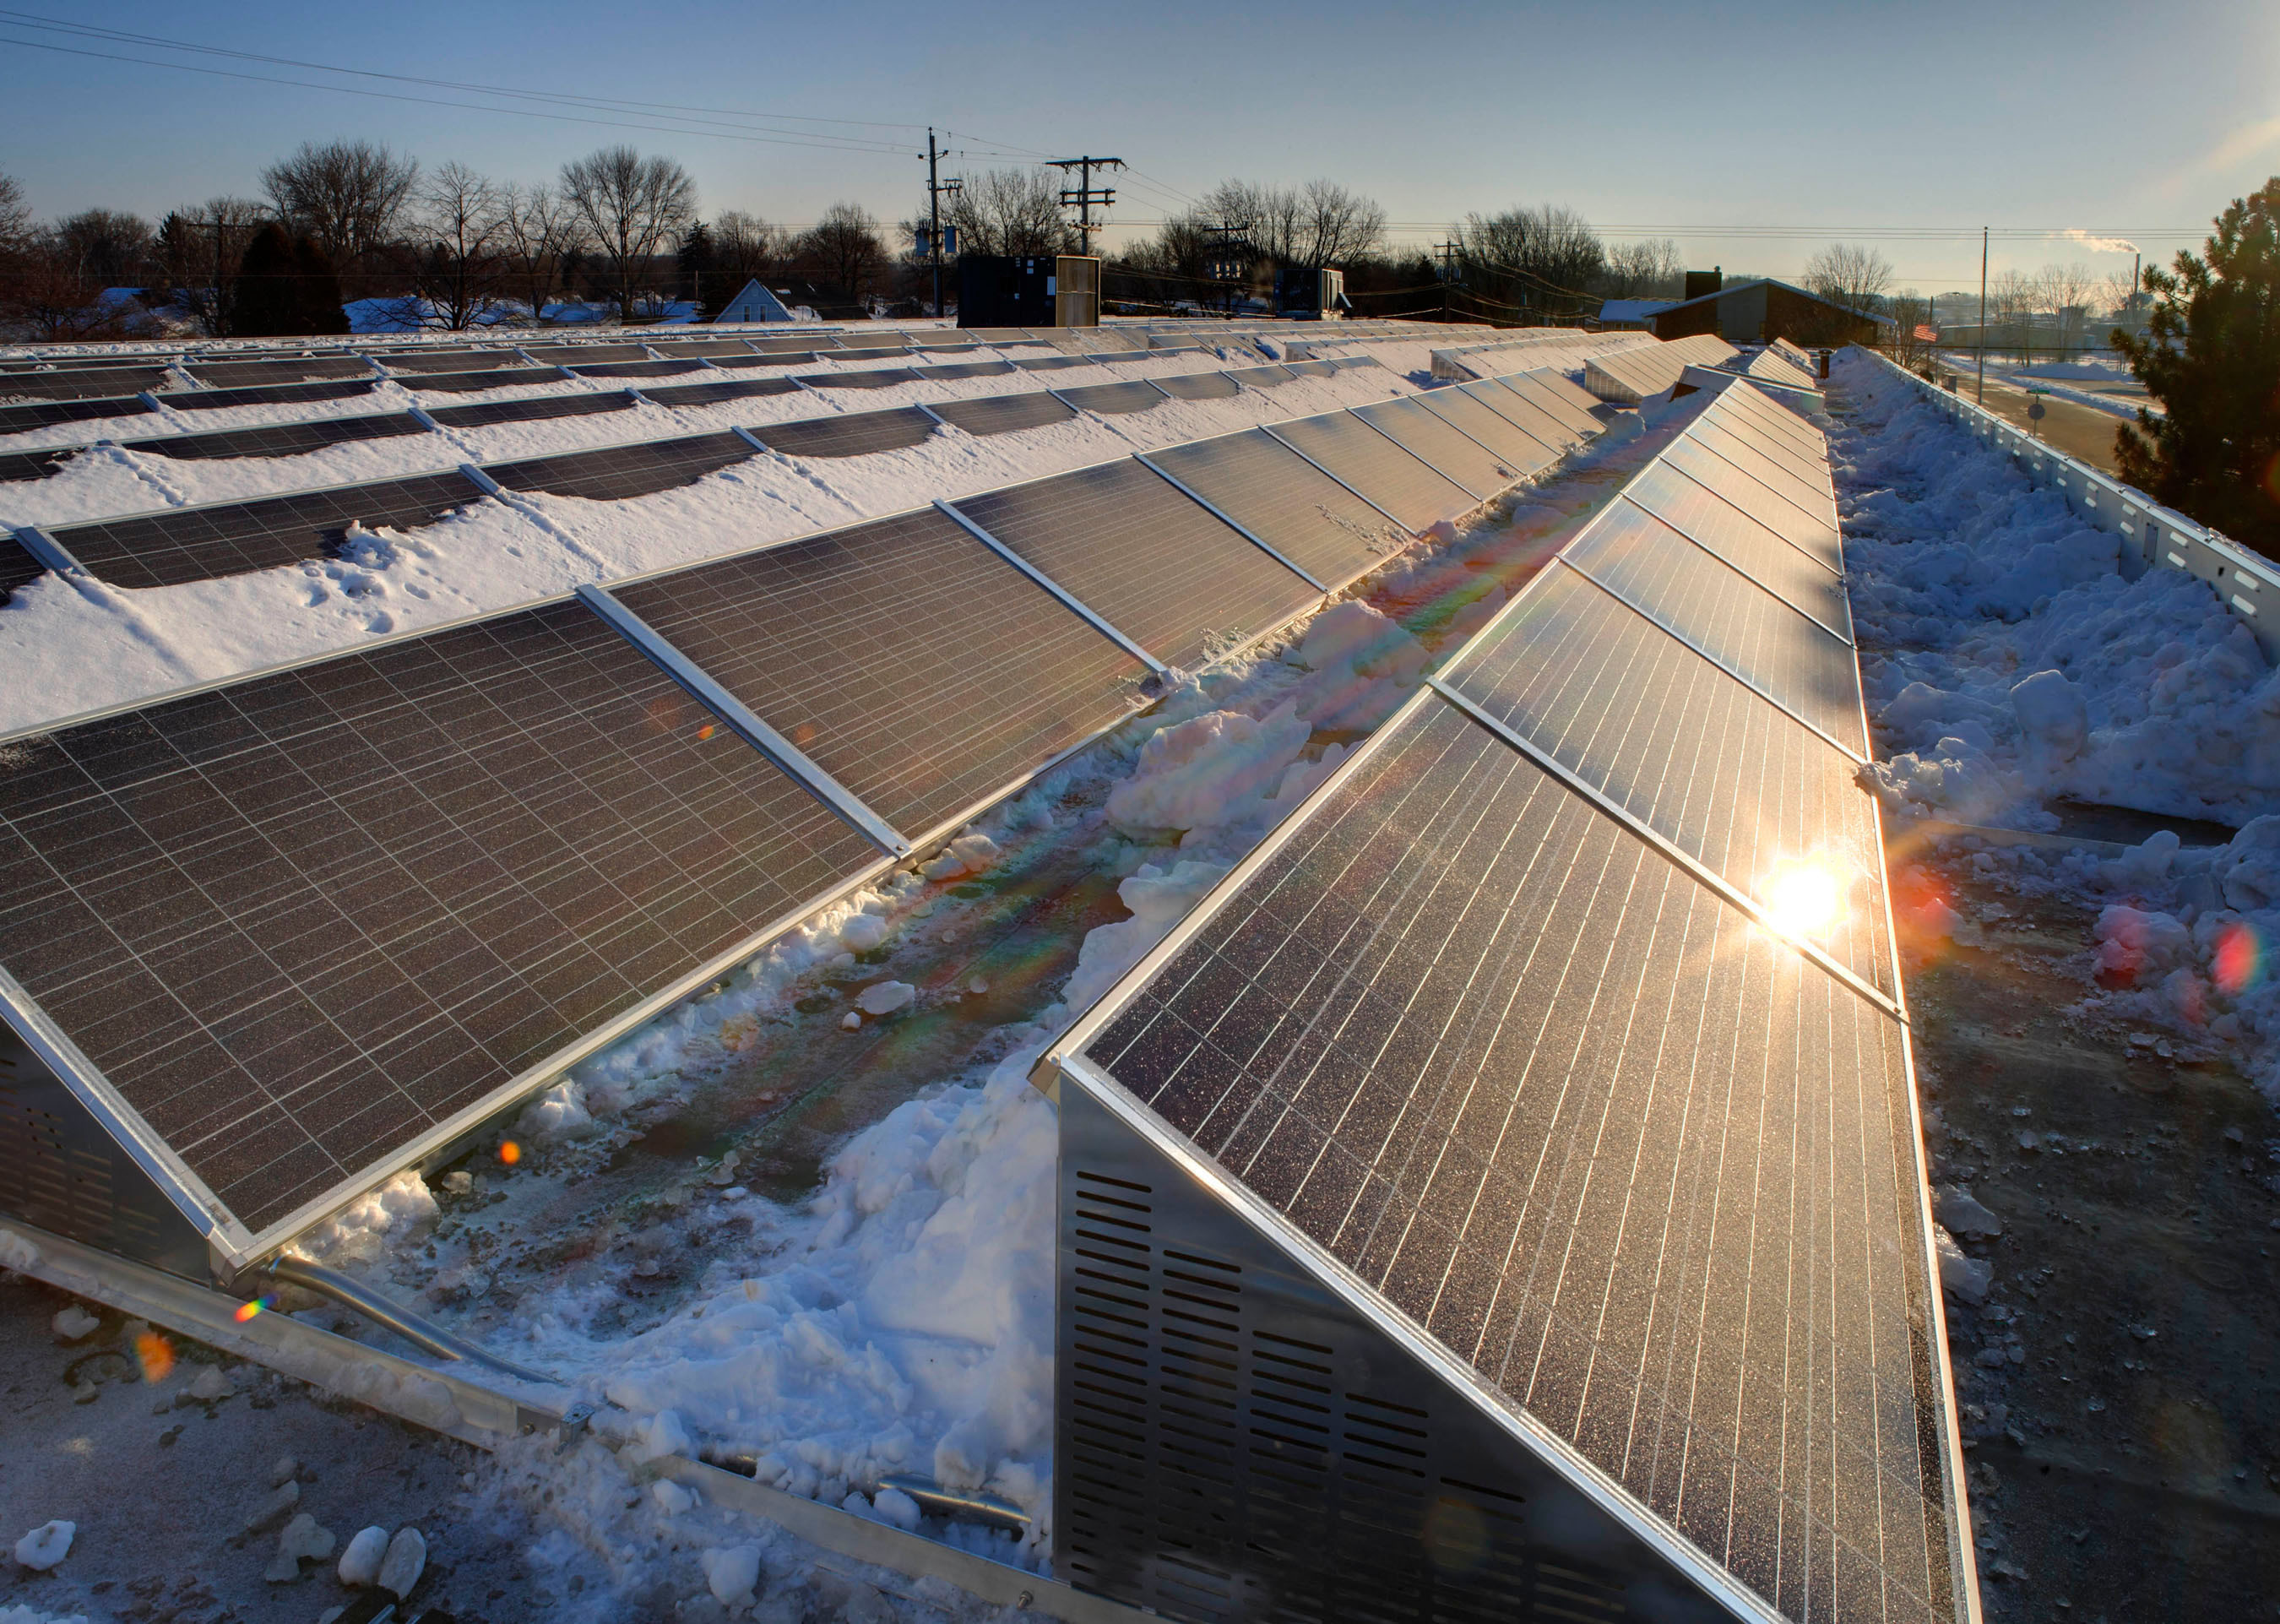 Details on a record-breaking solar install program in Wisconsin